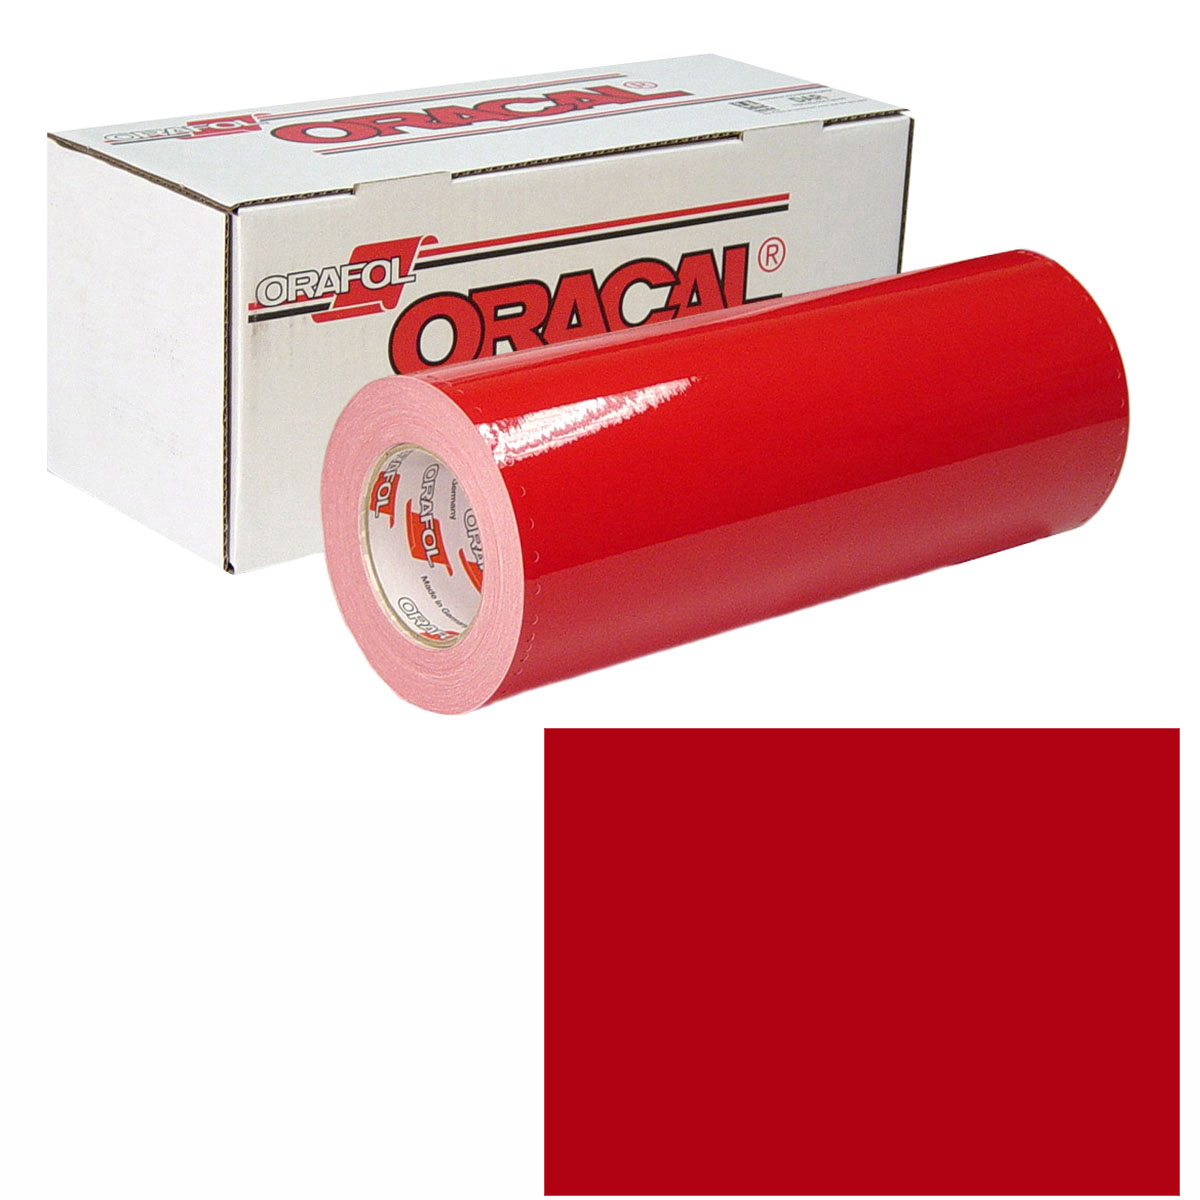 ORACAL 951 Unp 24In X 50Yd 305 Geranium Red